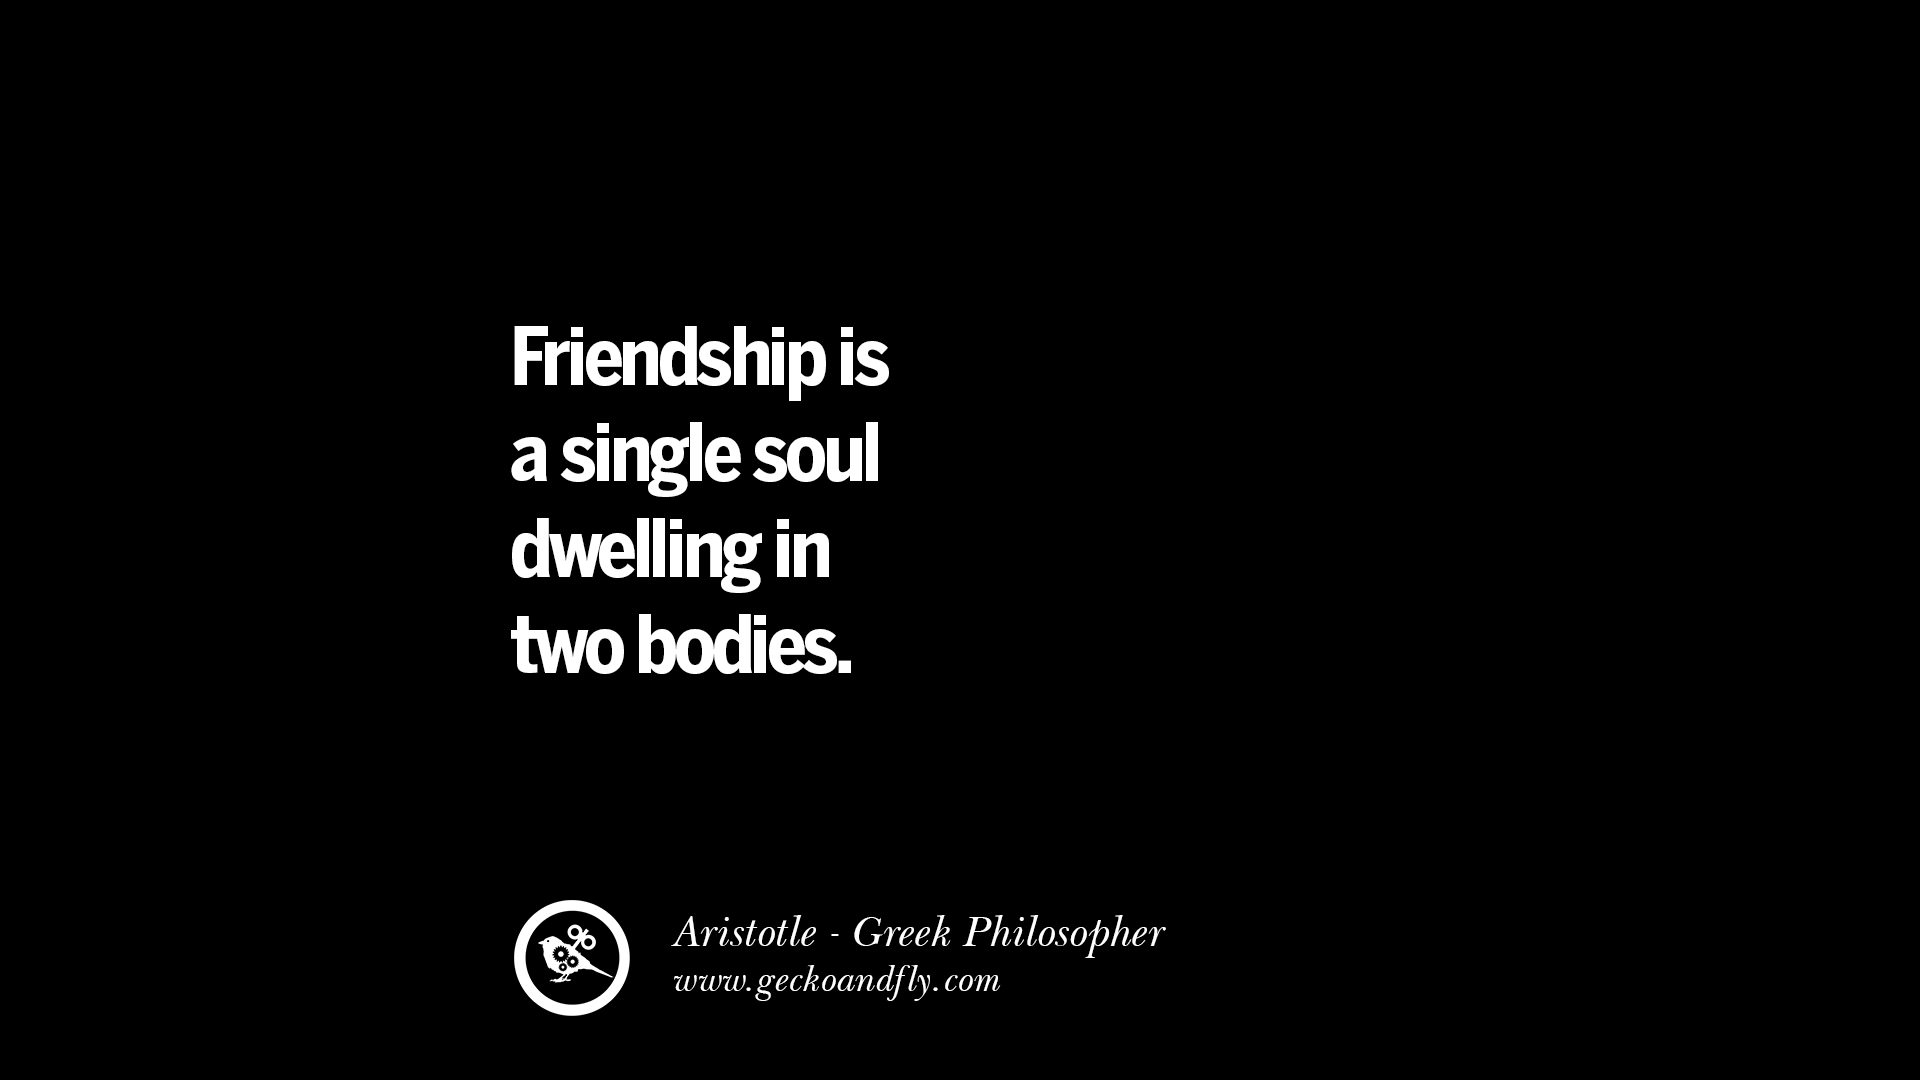 Turkish Quotes About Friendship 40 Famous Aristotle Quotes On Ethics Love Life Politics And